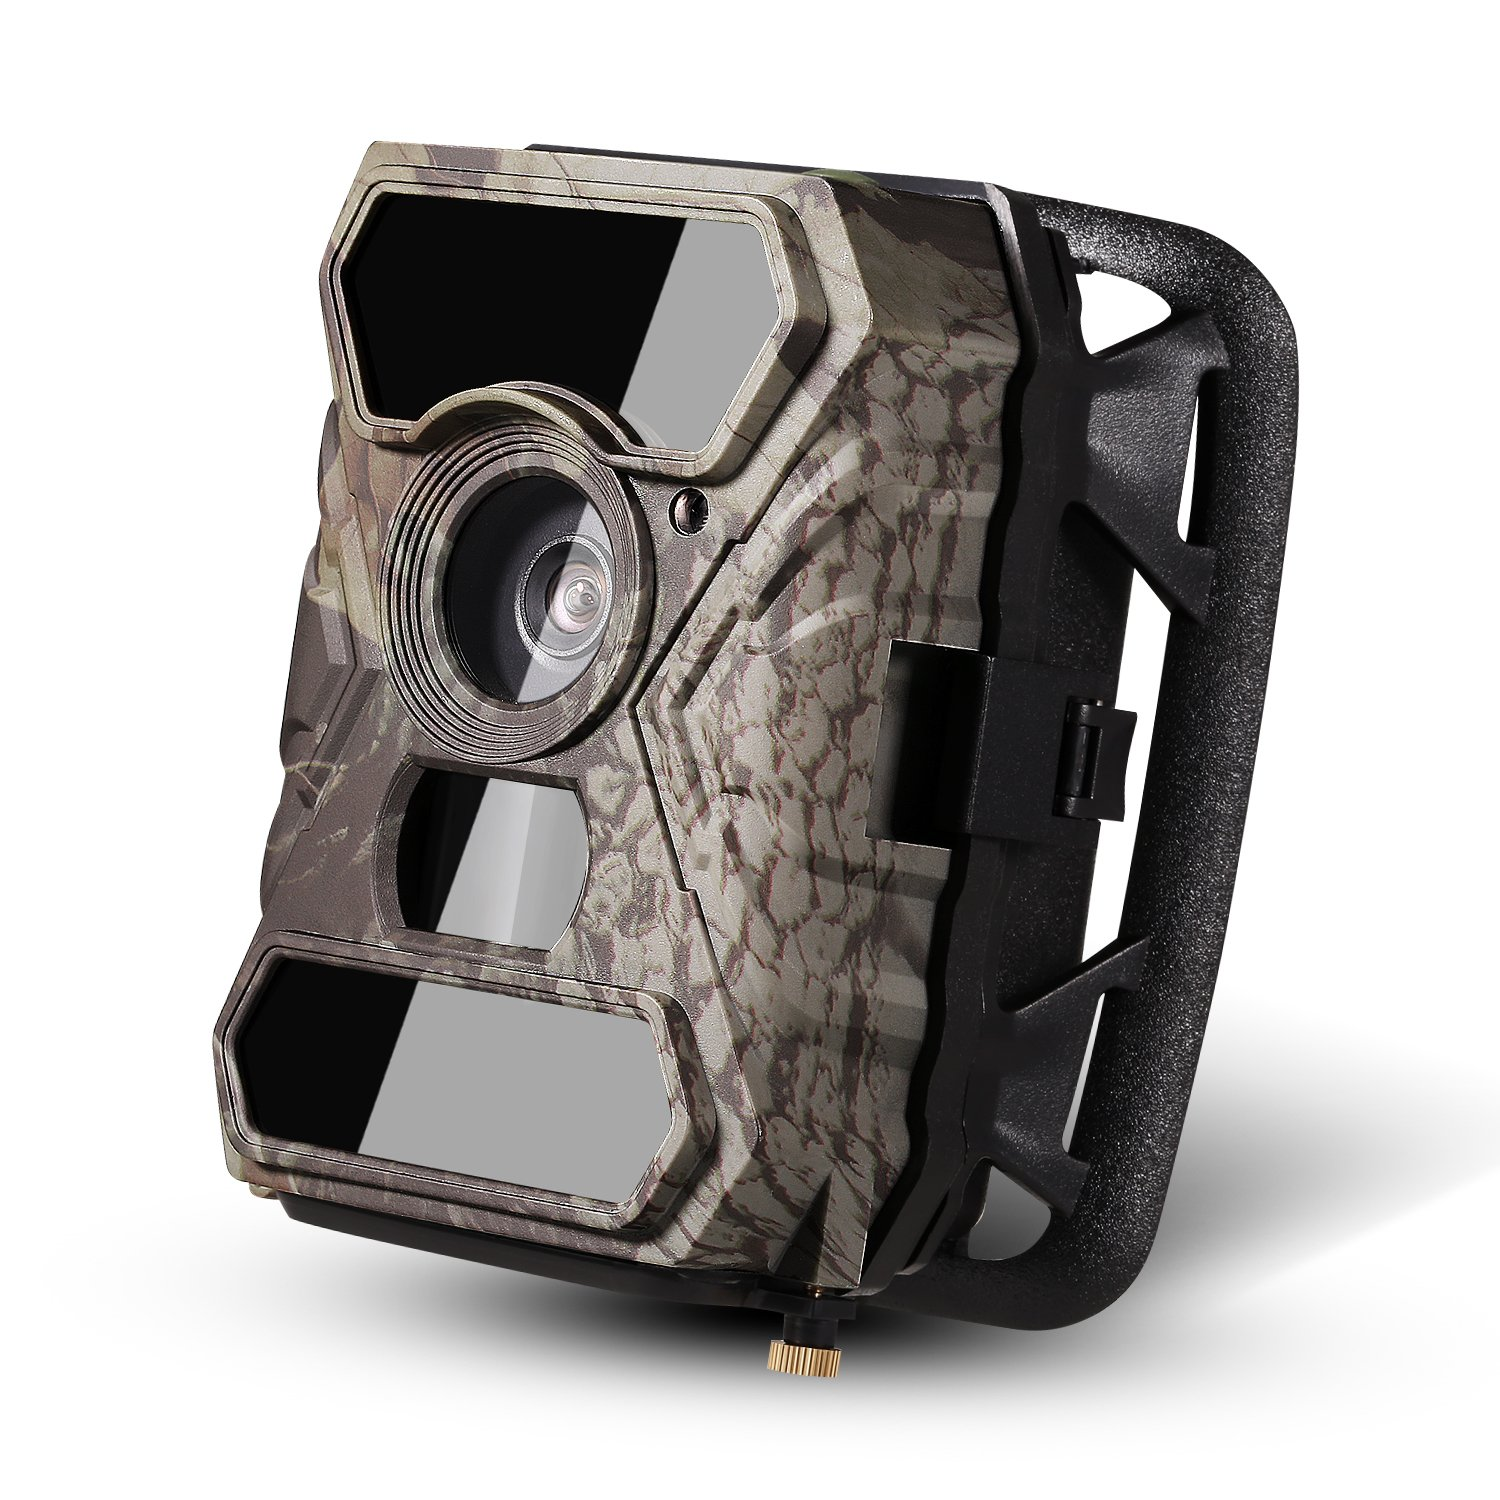 [ 2017 NEW ] Trail Camera -Ancheer 110° Wide PIR Angle 12MP 1080P 30fps 0.4s Trigger Time No Glow Wildlife Game Camera with 56pcs IR LEDs and Infrared Night Vision and Time Lapse by ANCHEER